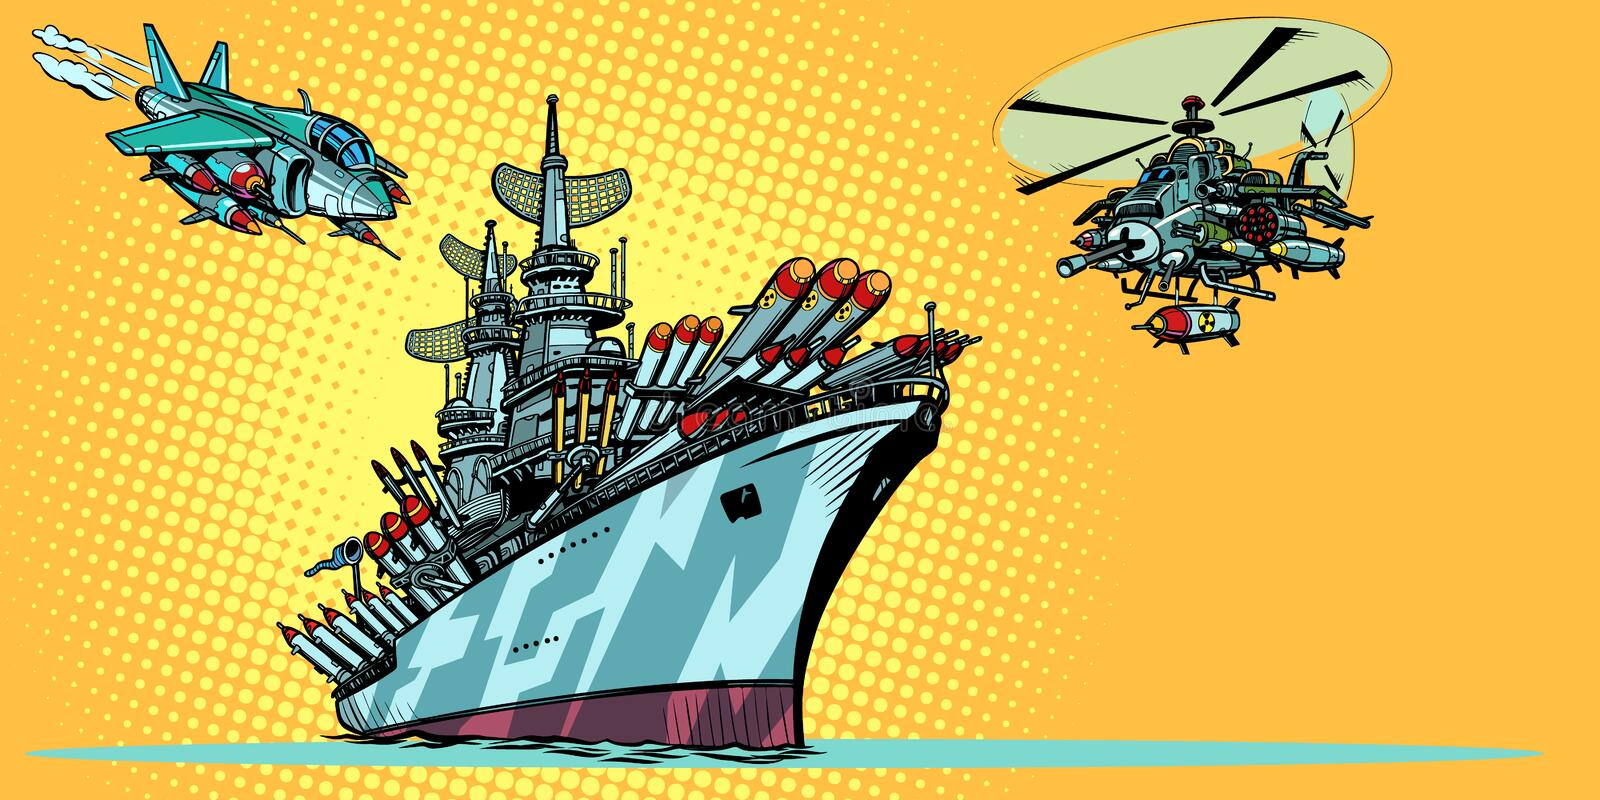 Military aircraft carrier with fighter jets and helicopters royalty free illustration